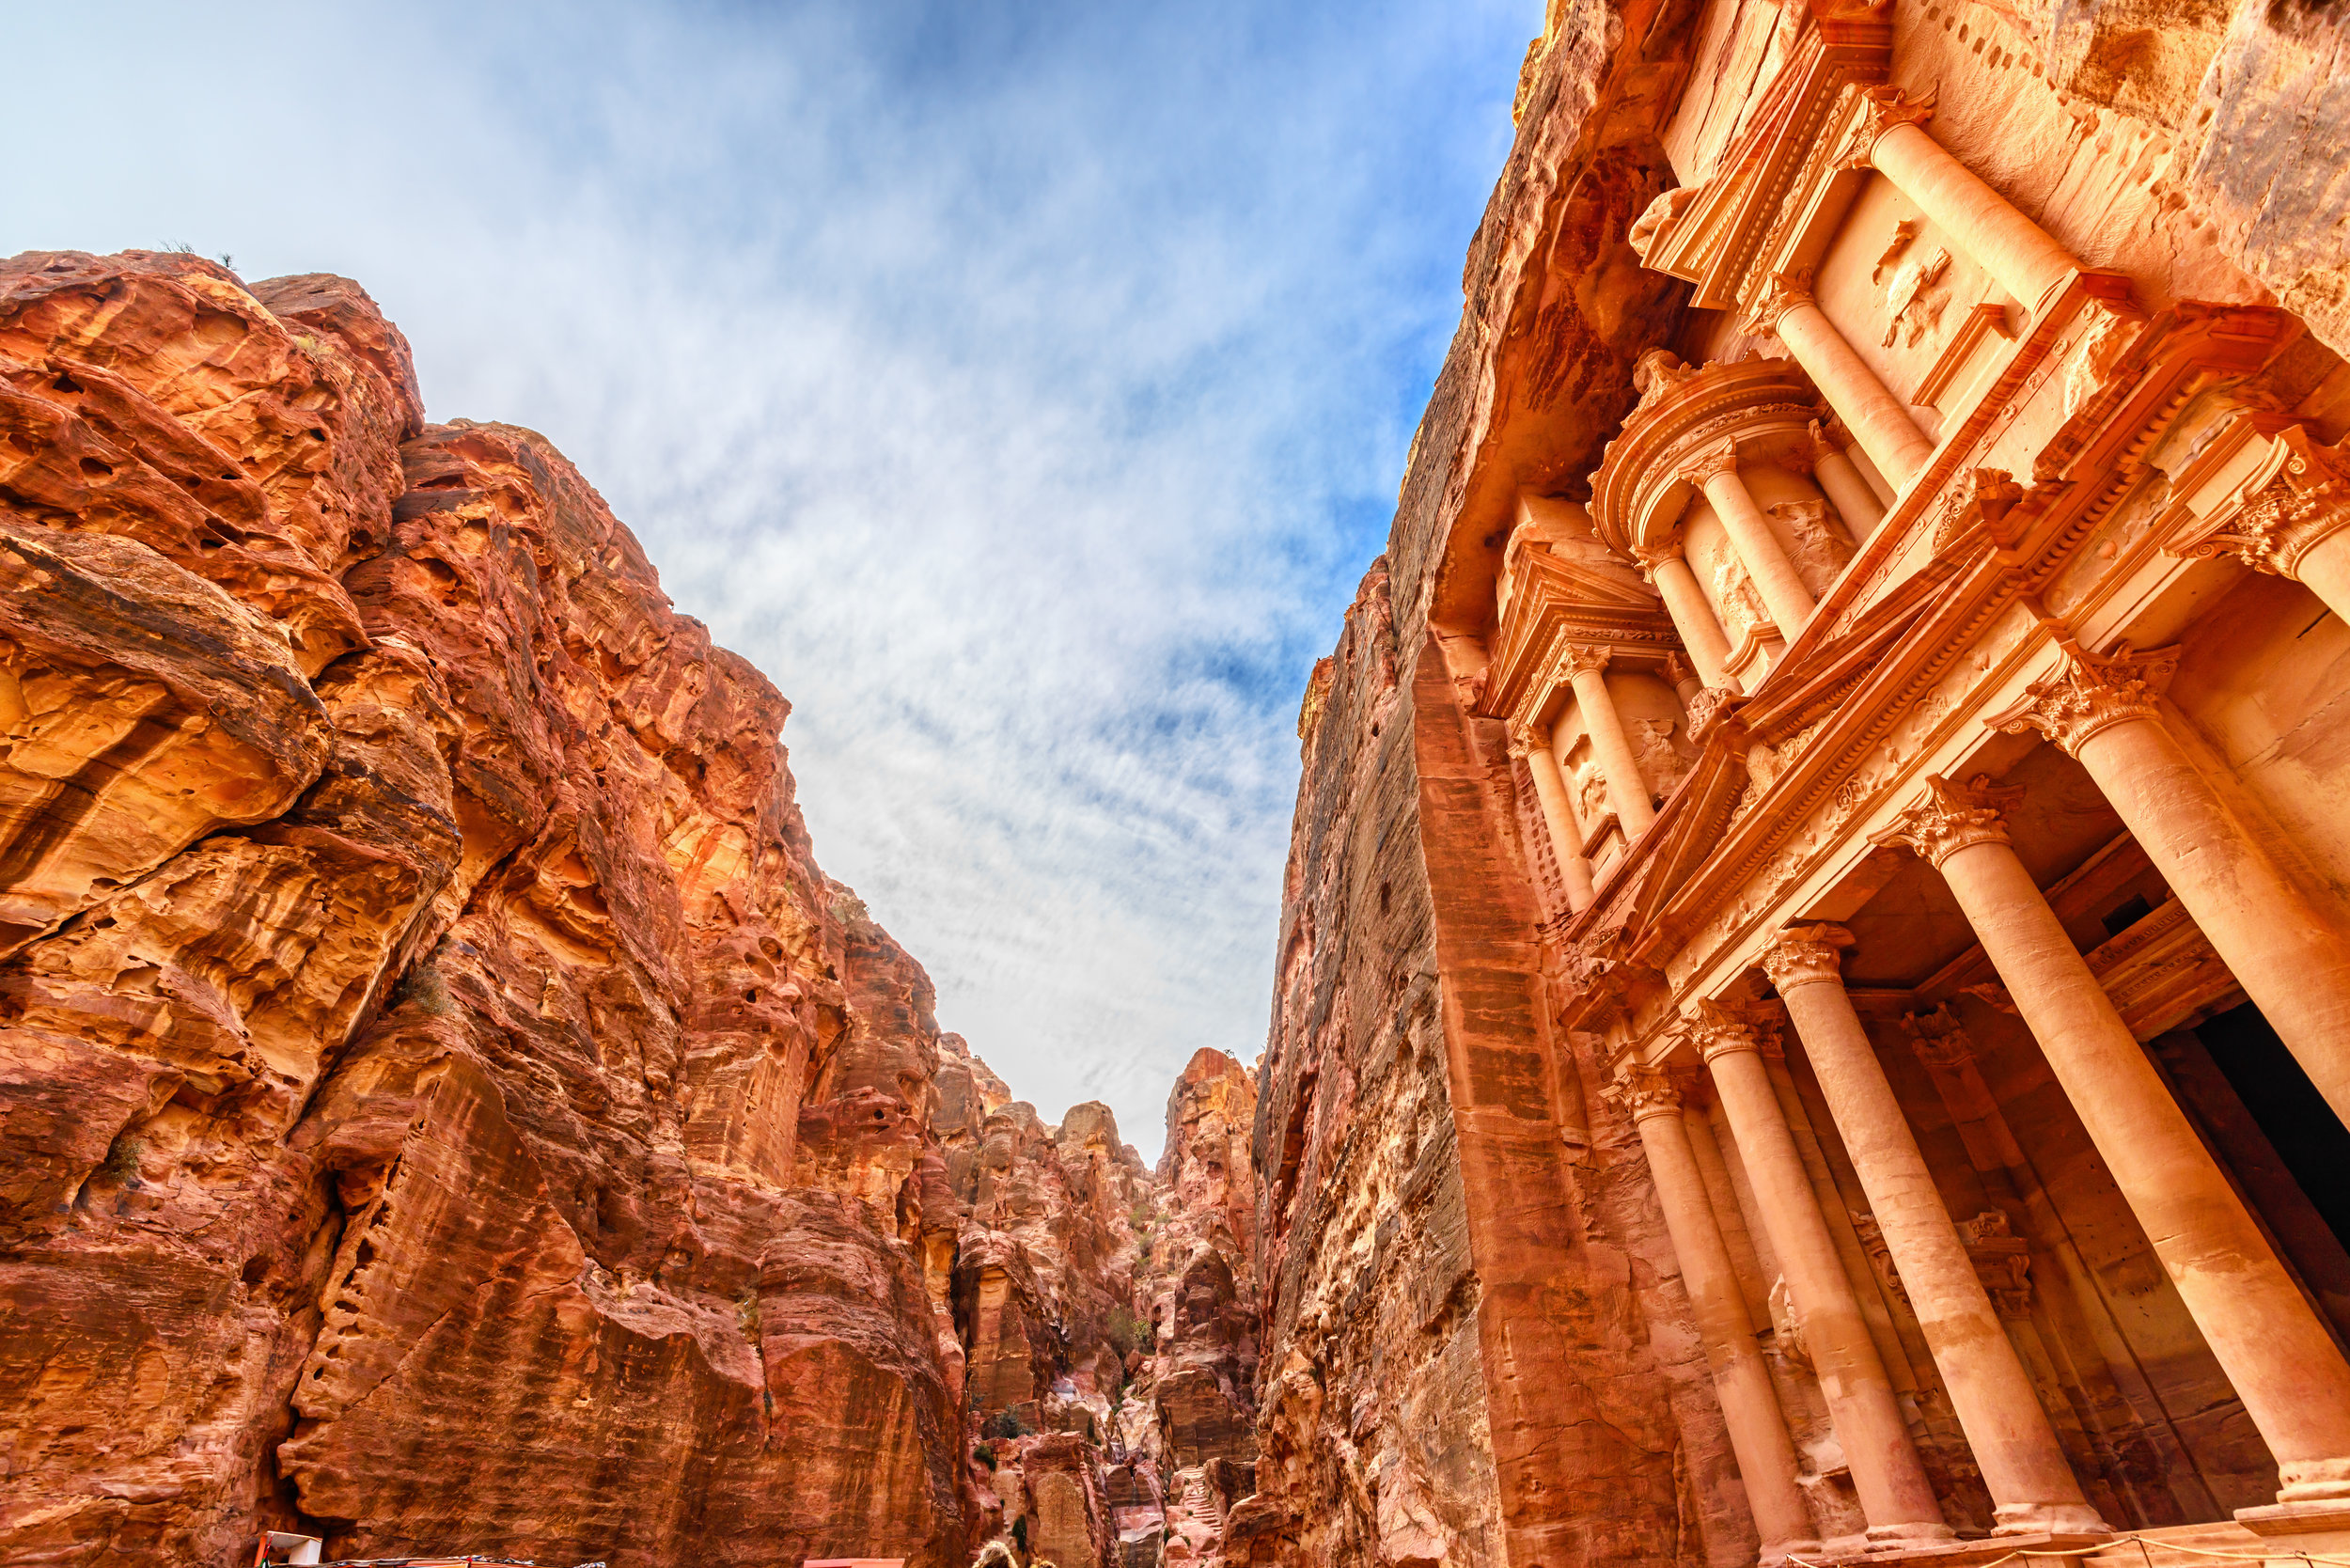 Al Khazneh in the ancient Jordanian city of Petra.jpg